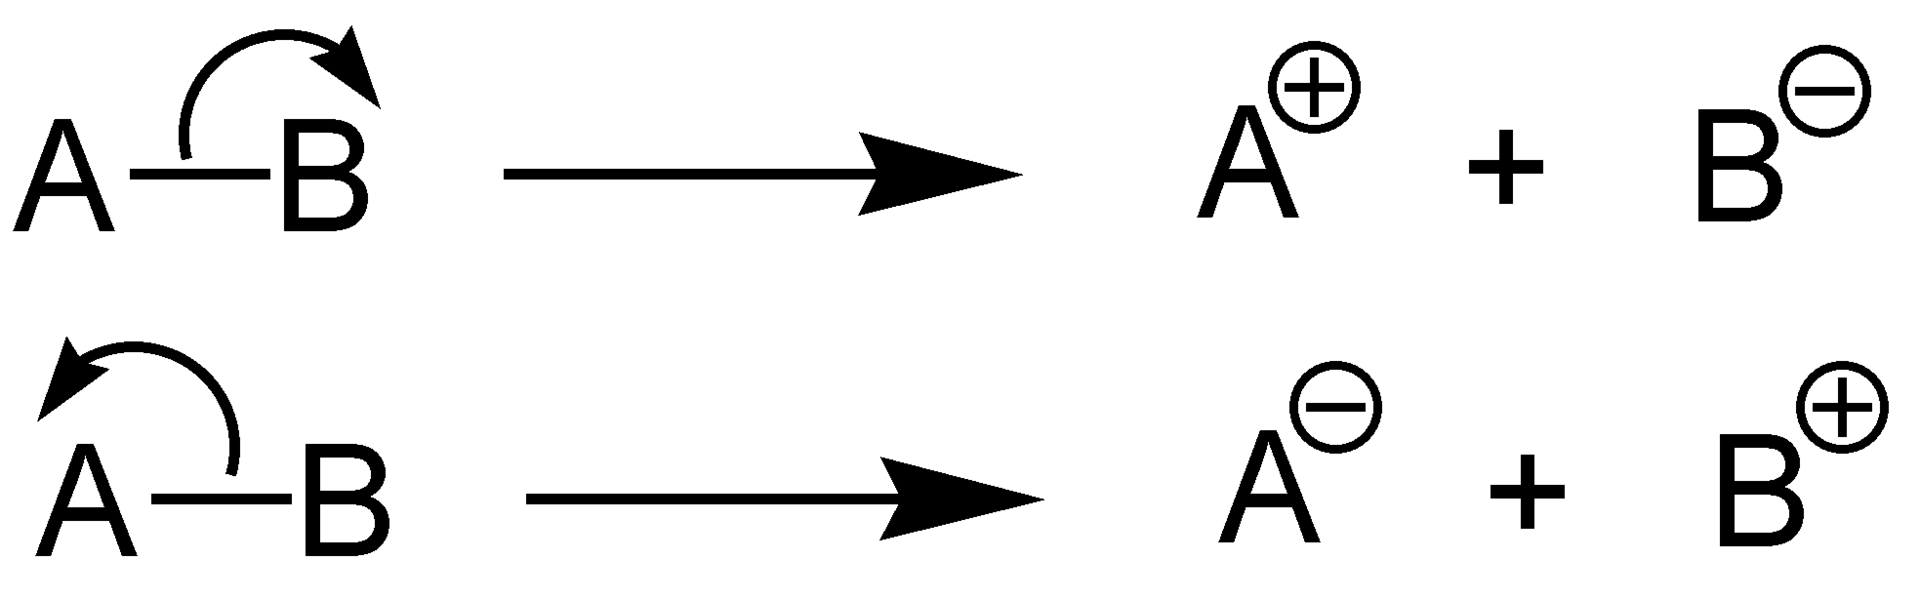 Difference Between Enthalpy of Atomisation and Bond Dissociation